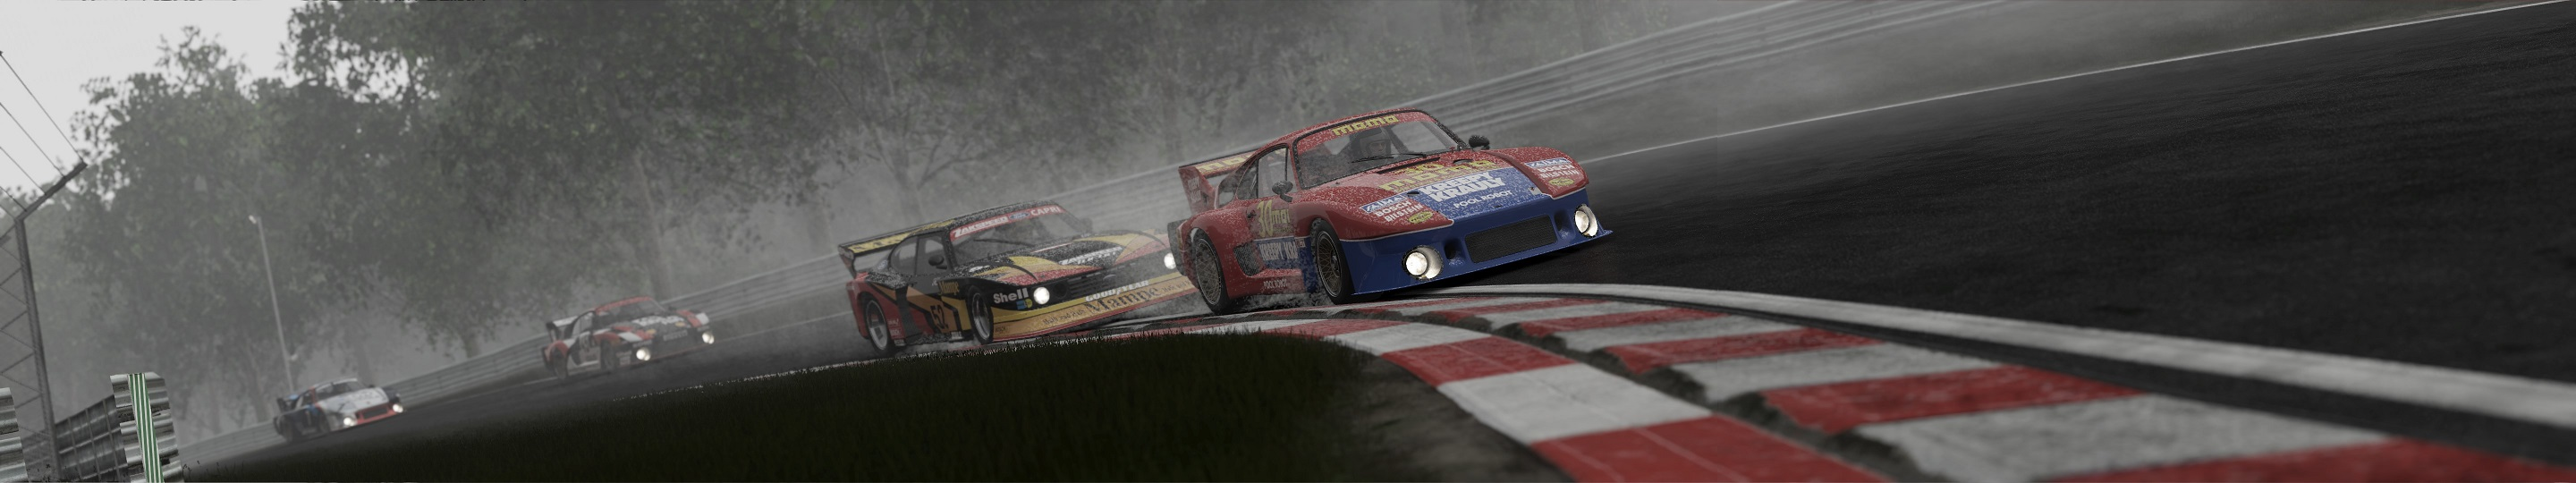 PCARS GROUP 5 1 BRANDS HATCH.jpg